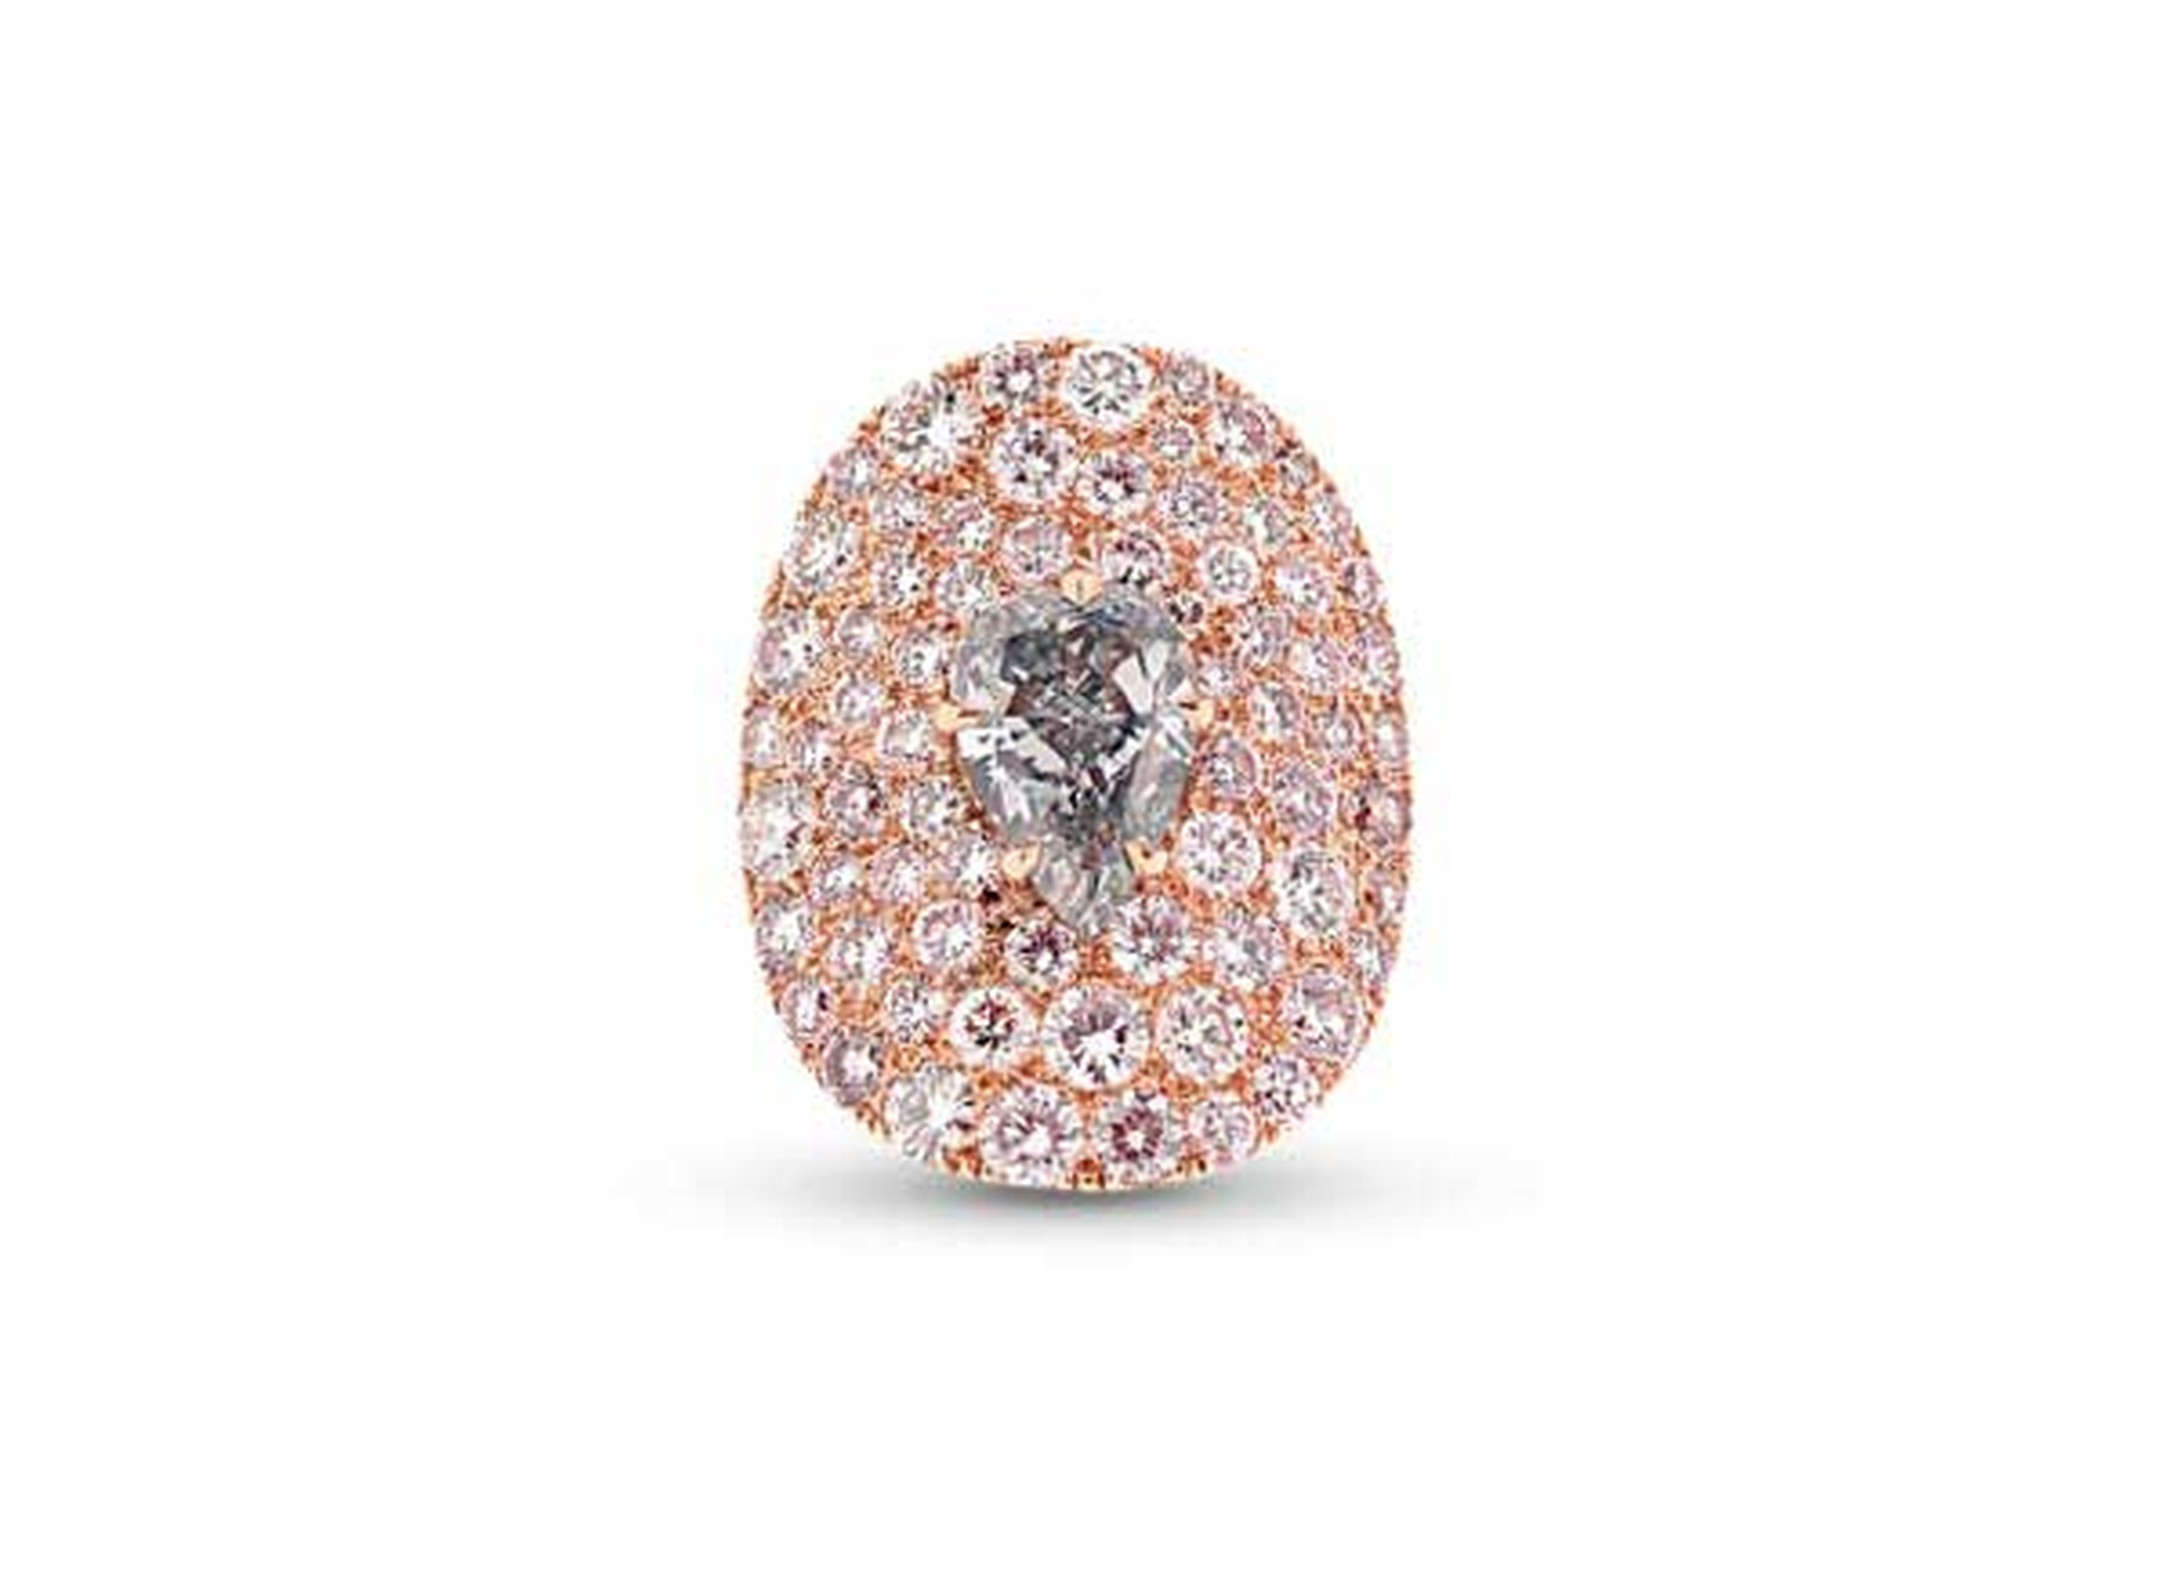 "Star Diamond ""The Tear of Paris"" ring set with a rare grey blue diamond set amongst a sea of Fancy pink diamonds."